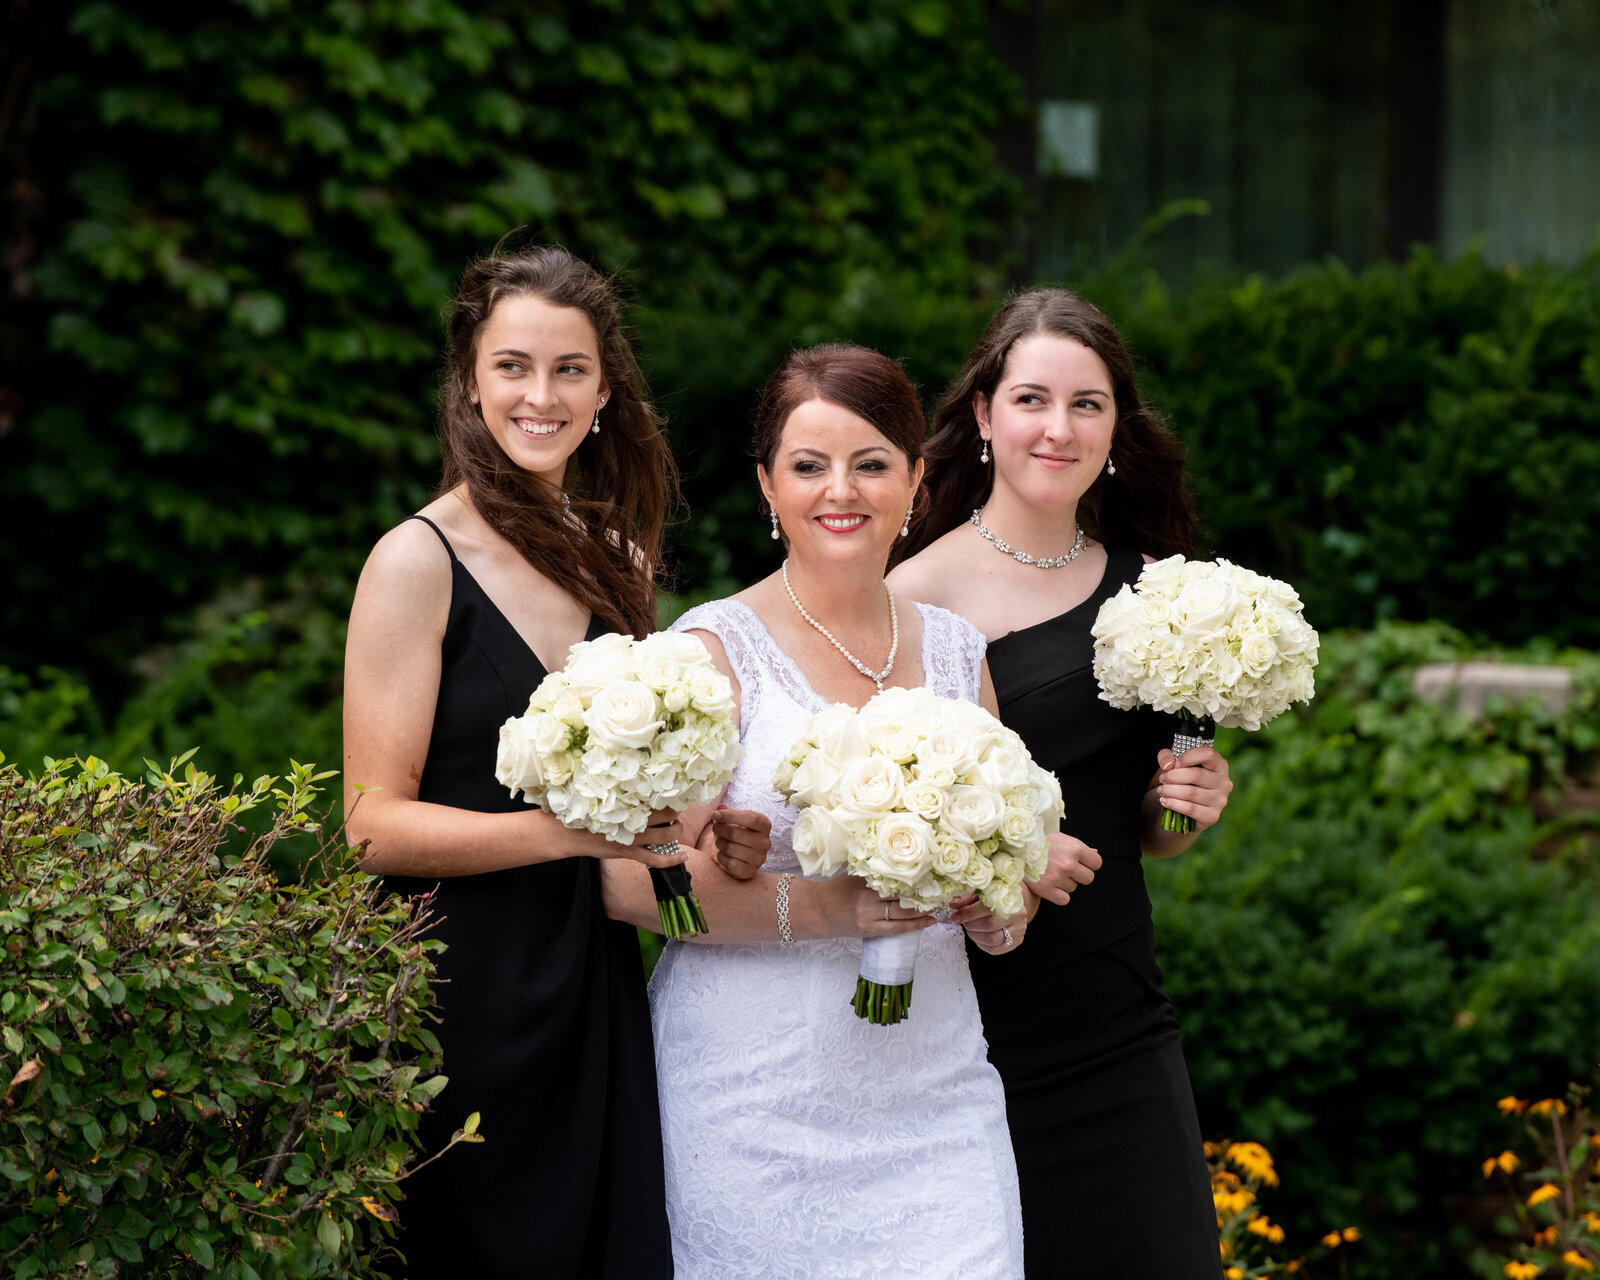 wedding-reception-lake-geneva-ceremony-bride-daughters